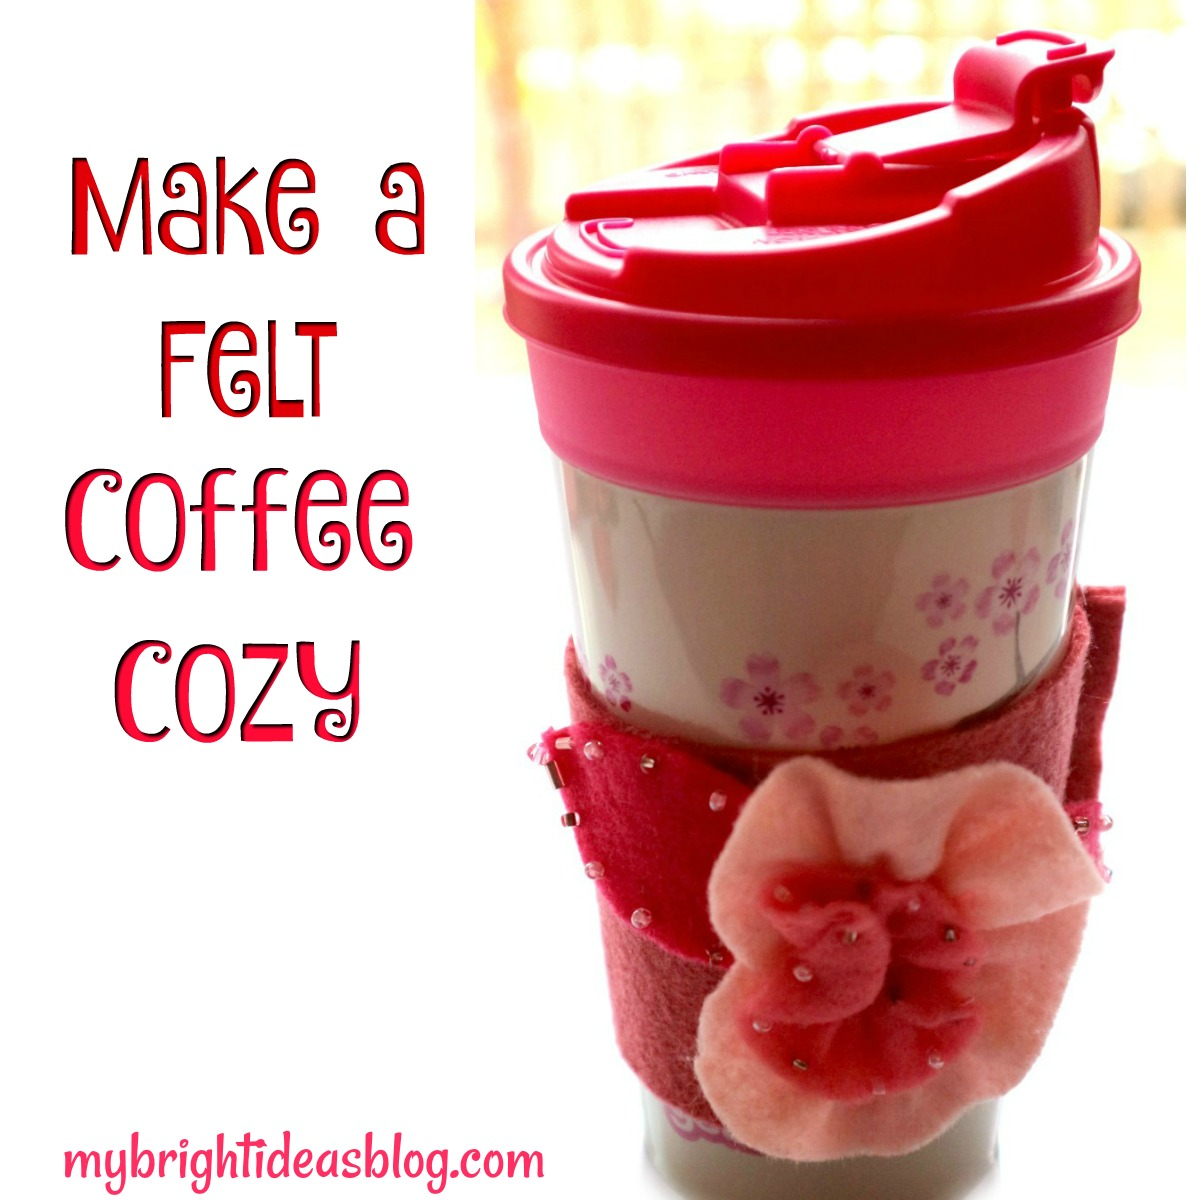 Make a felt coffee cozy! This easy Diy will save your fingers when you use a take away hot drink cup. mybrightideasblog.com